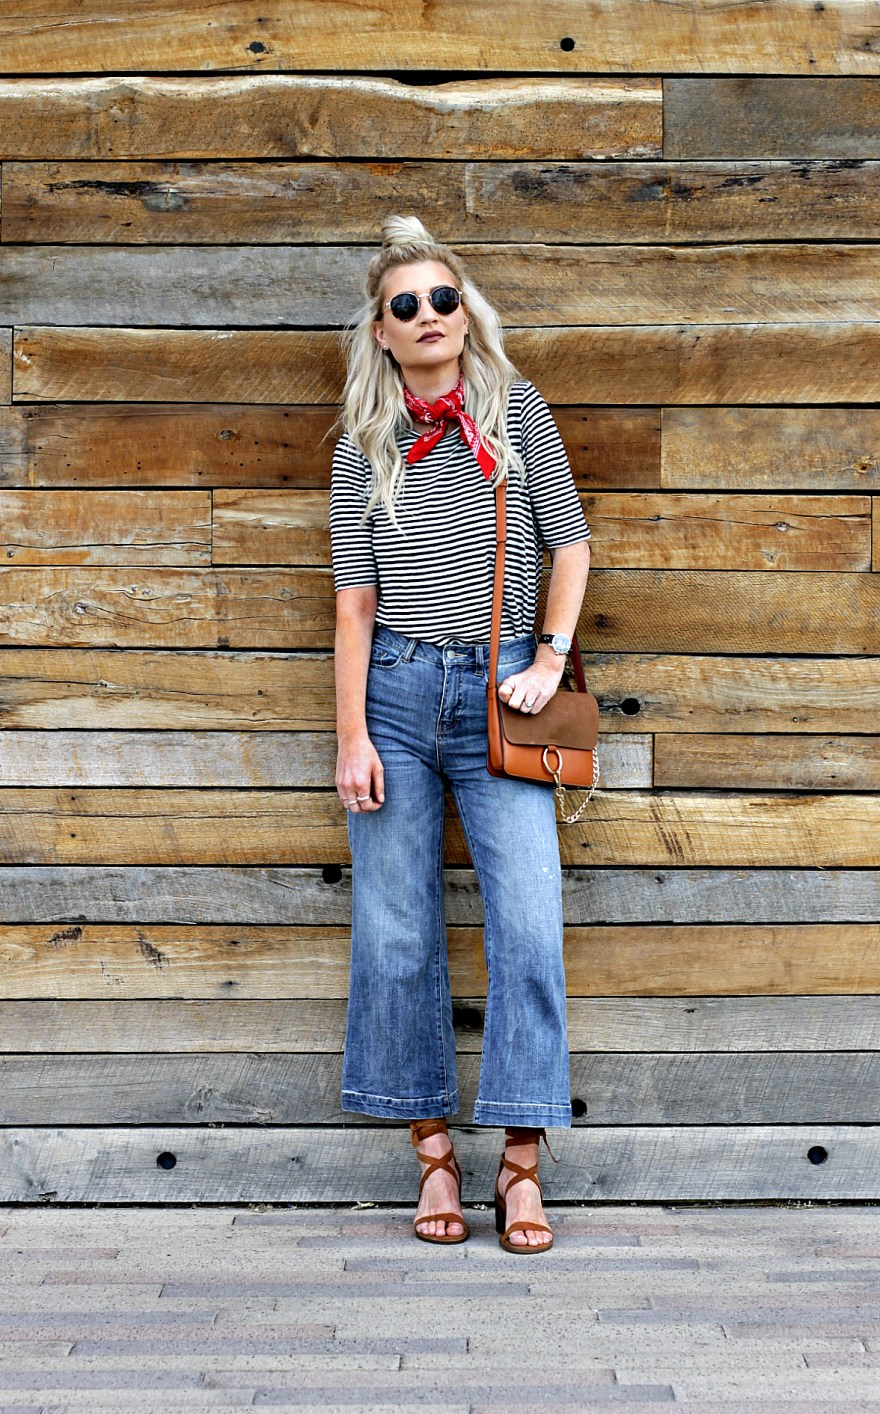 culottes, striped tee, bandana, how to wear, chloe, faye, bag, purse, lace up, sandals, tie up, circle sunglasses, fashion blogger, fashion, outfit, ideas, inspo, las vegas, blogger